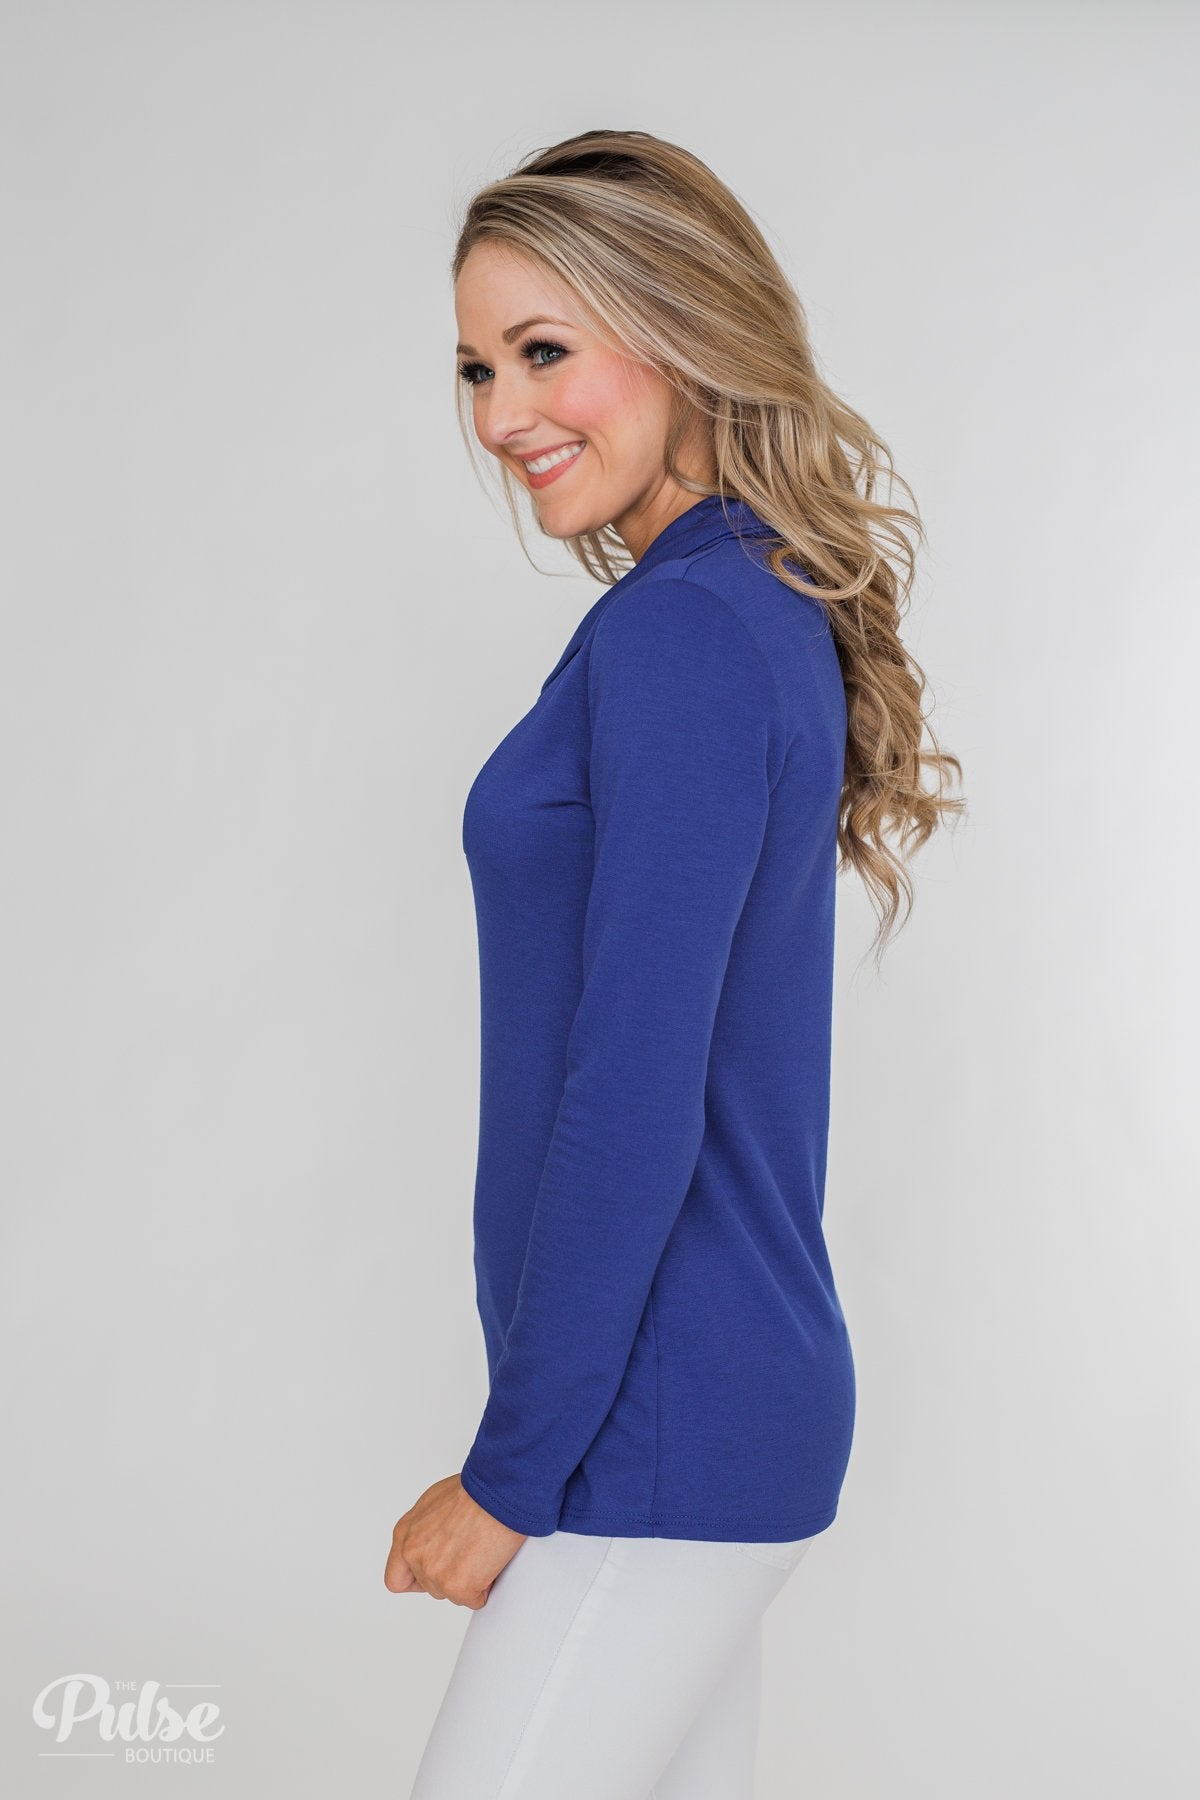 Give Me Time Zipper Pullover Top- Royal Blue